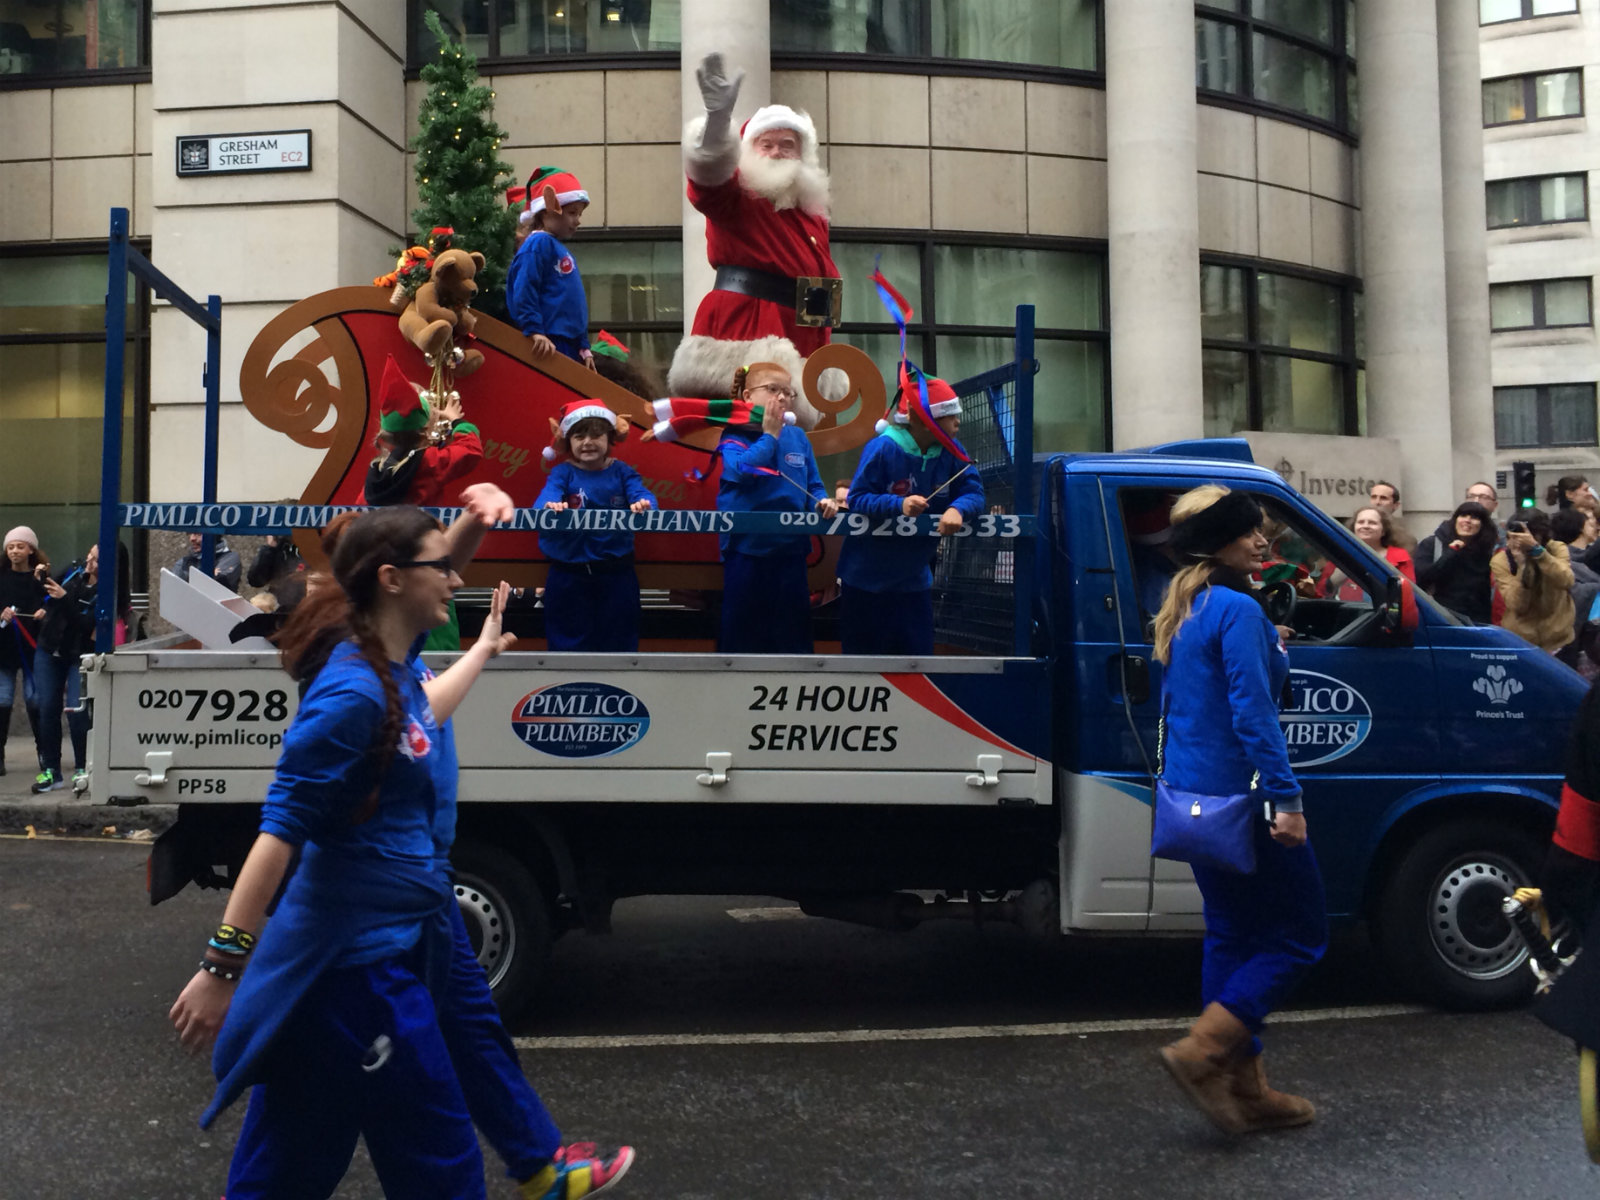 One of the biggest sections was from Pimlico Plumbers who also brought Santa.